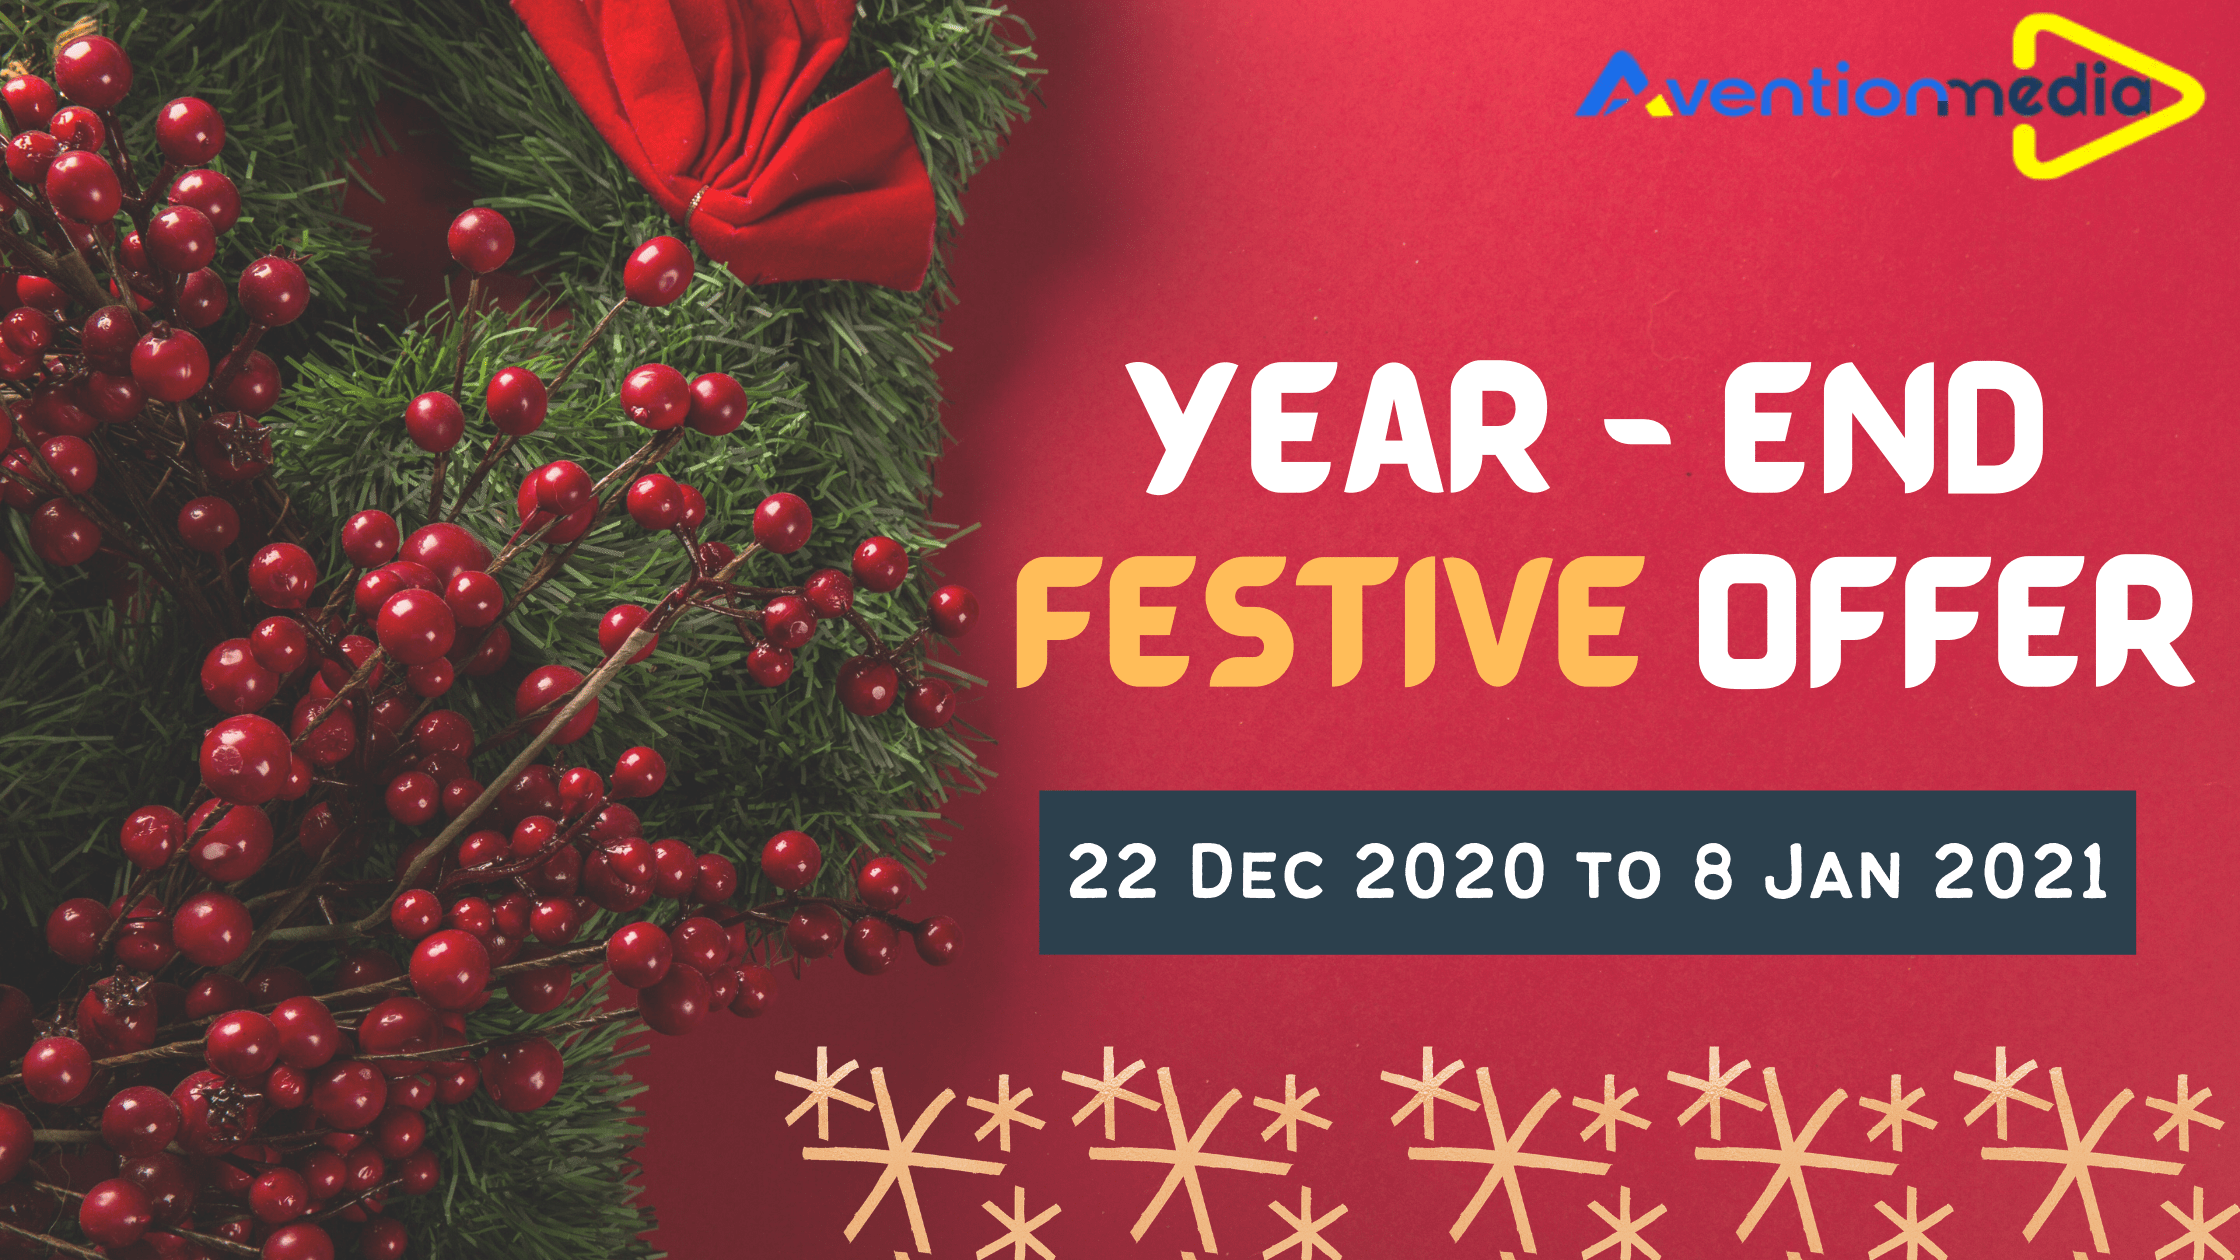 Christmas Ornaments 2021 Series End Avention Media Unveils Exclusive Year End Offer To Kick Start 2021 Years Holiday Season Offer